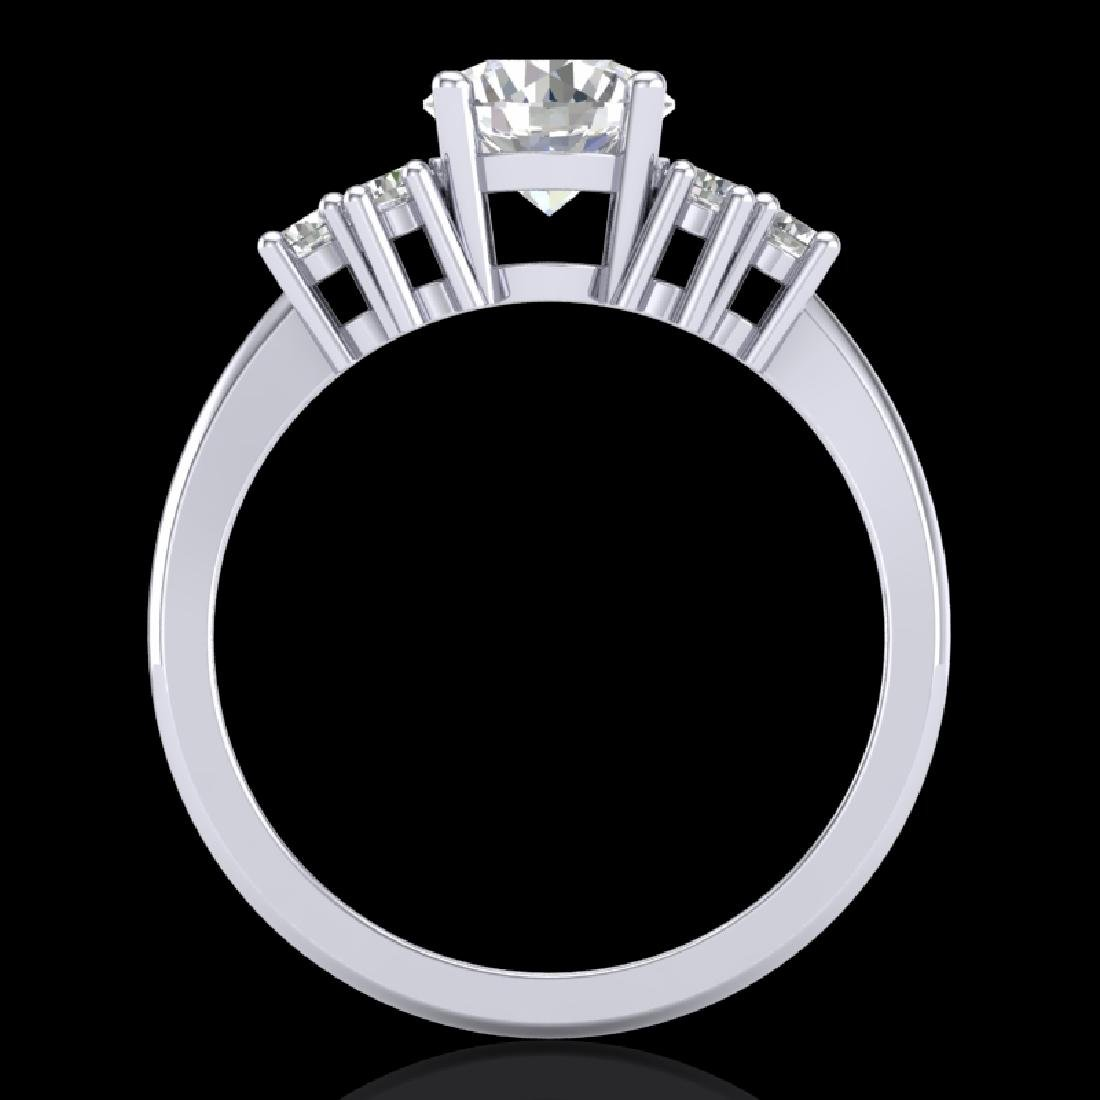 1.5 CTW VS/SI Diamond Solitaire Ring 18K White Gold - 2